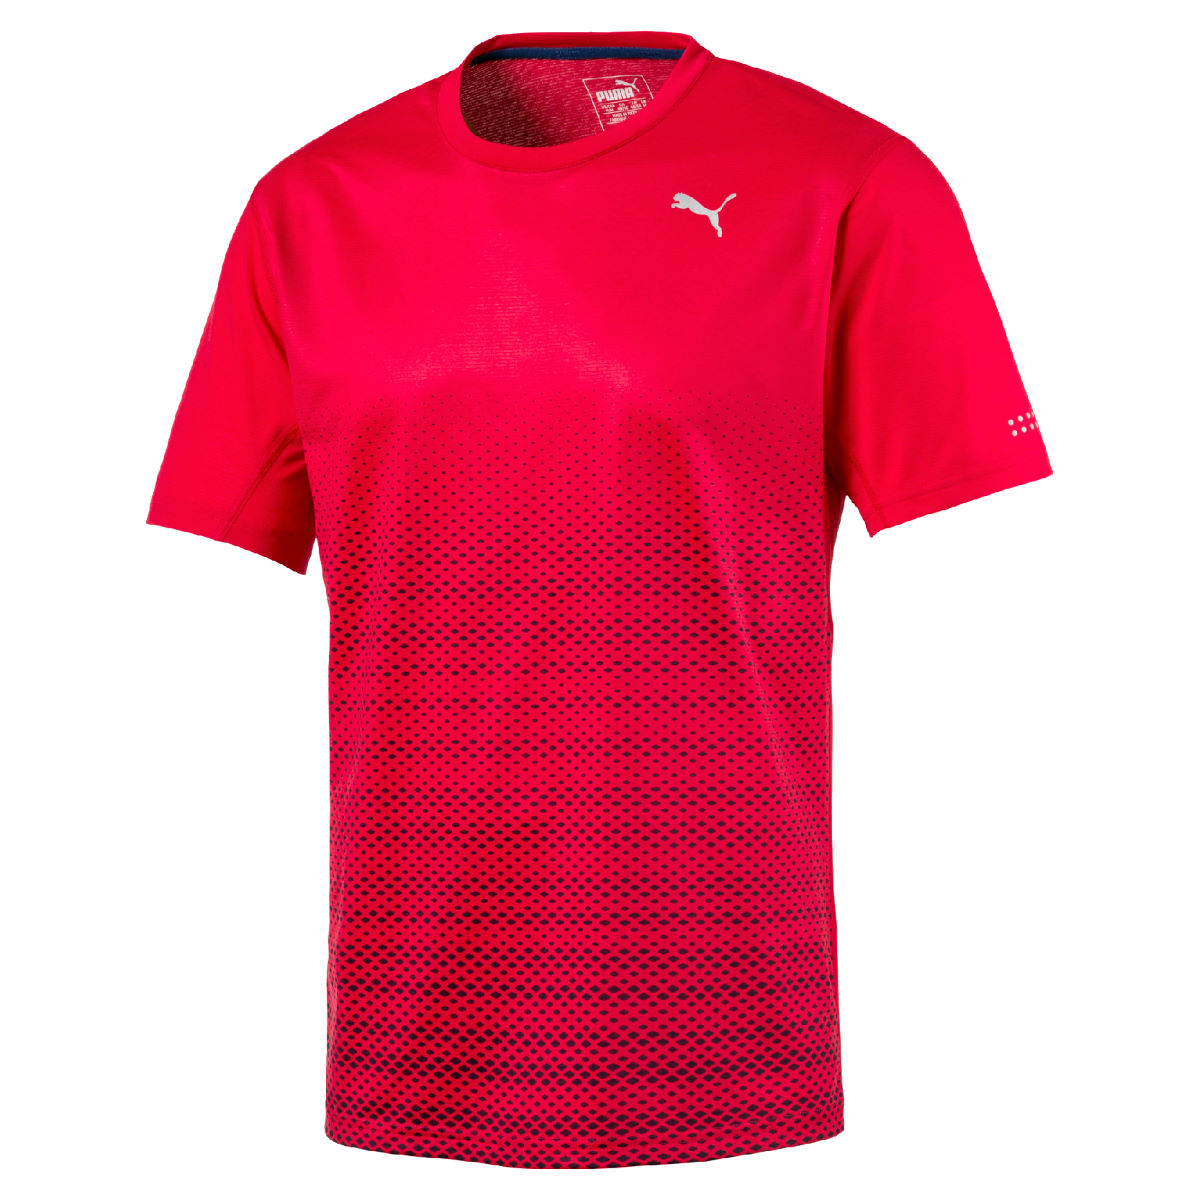 Maillot de running Puma Graphic (manches courtes) - S